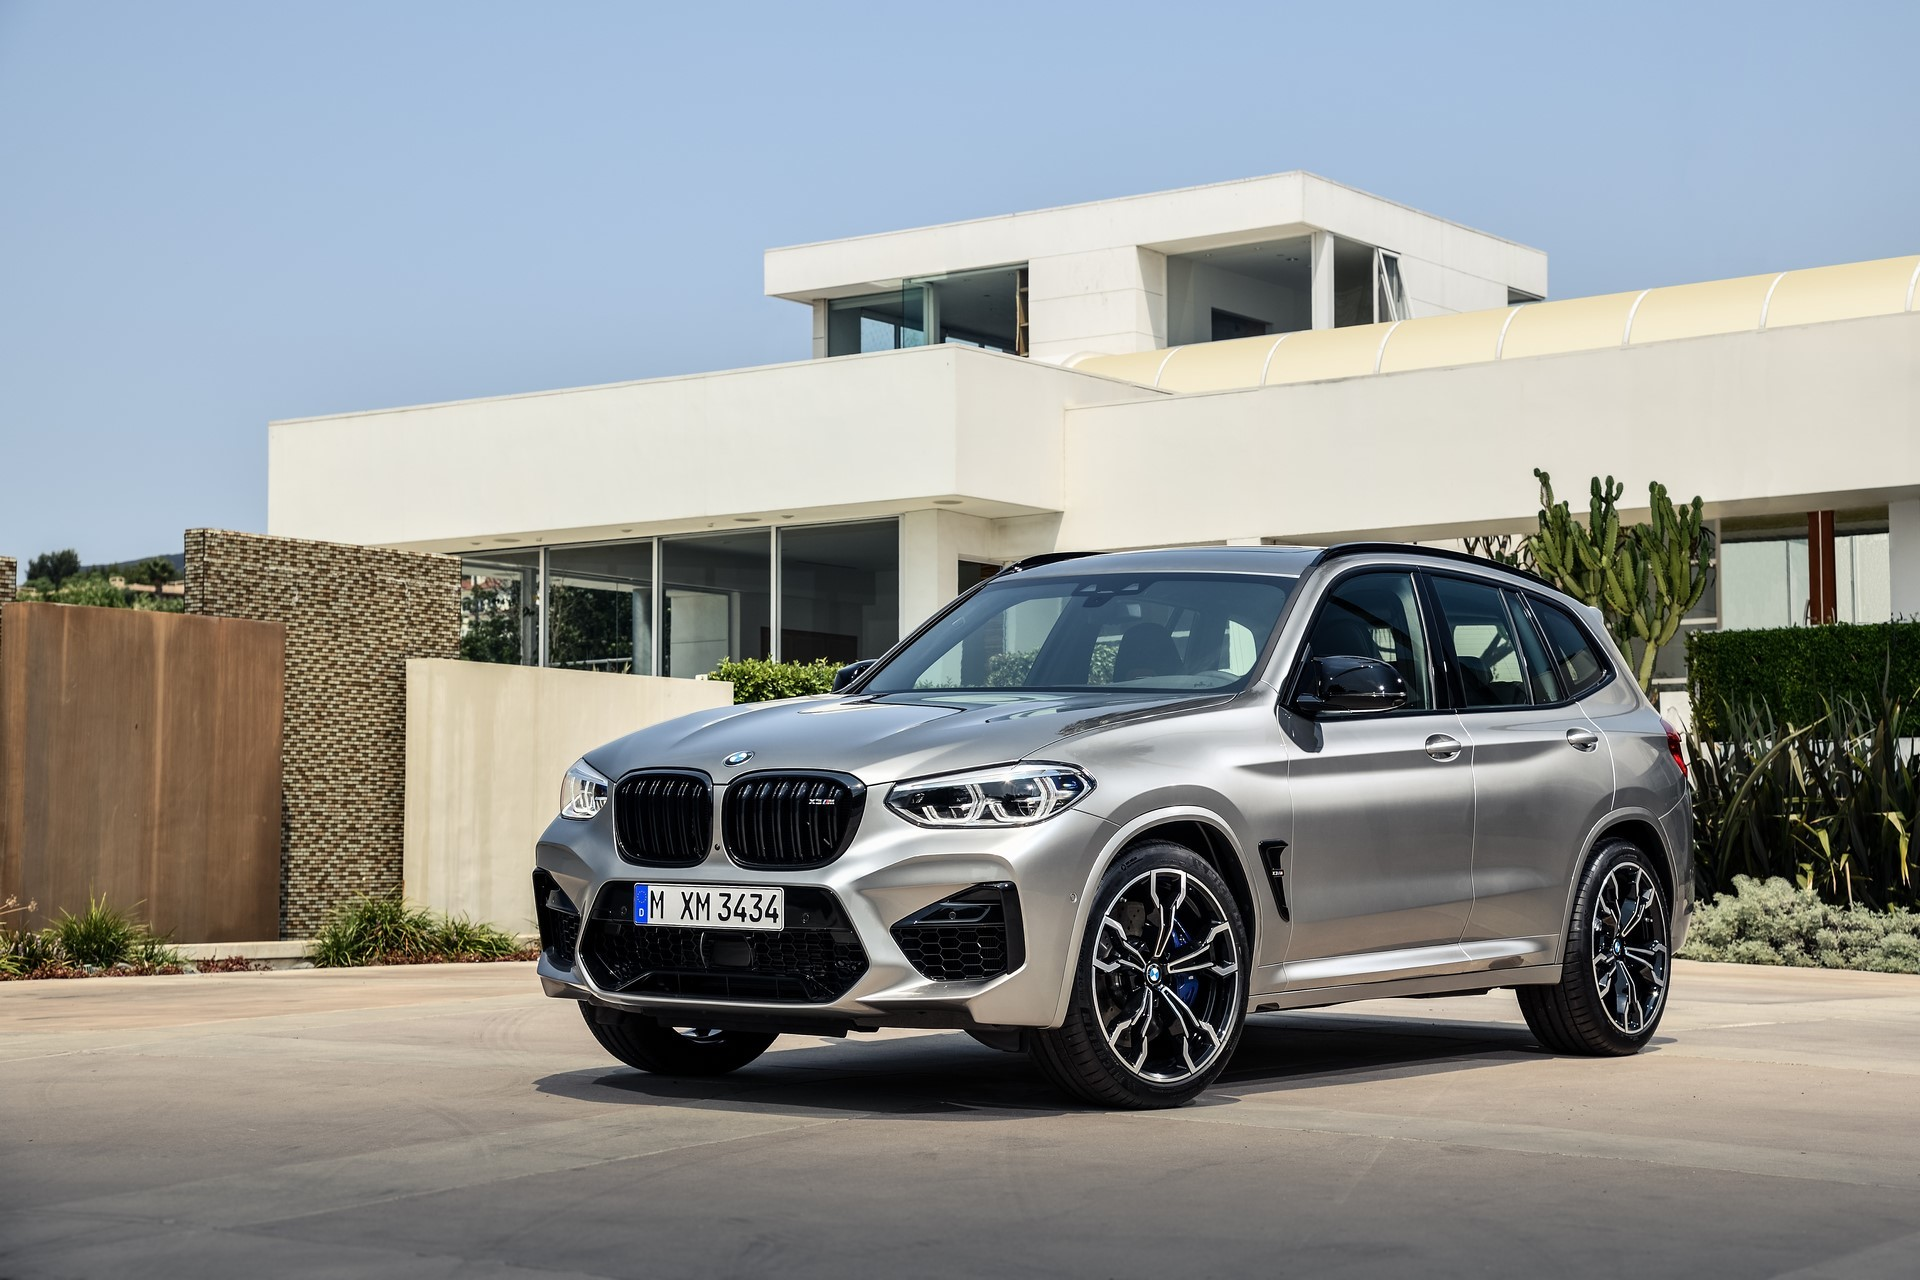 BMW X3 M and X4 M 2019 (4)